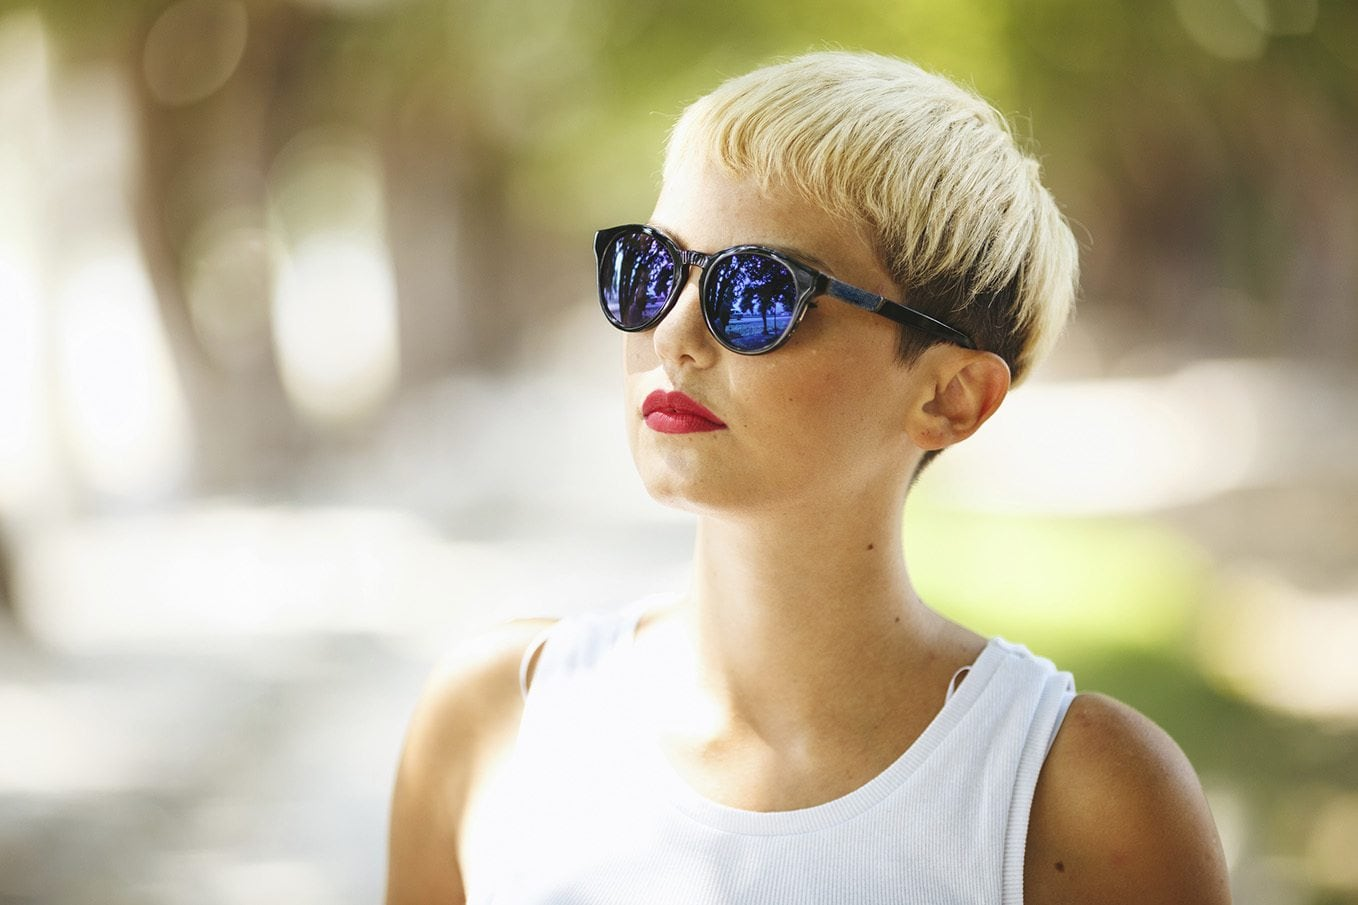 11 Best Cropped Haircuts And Hairstyles For Women